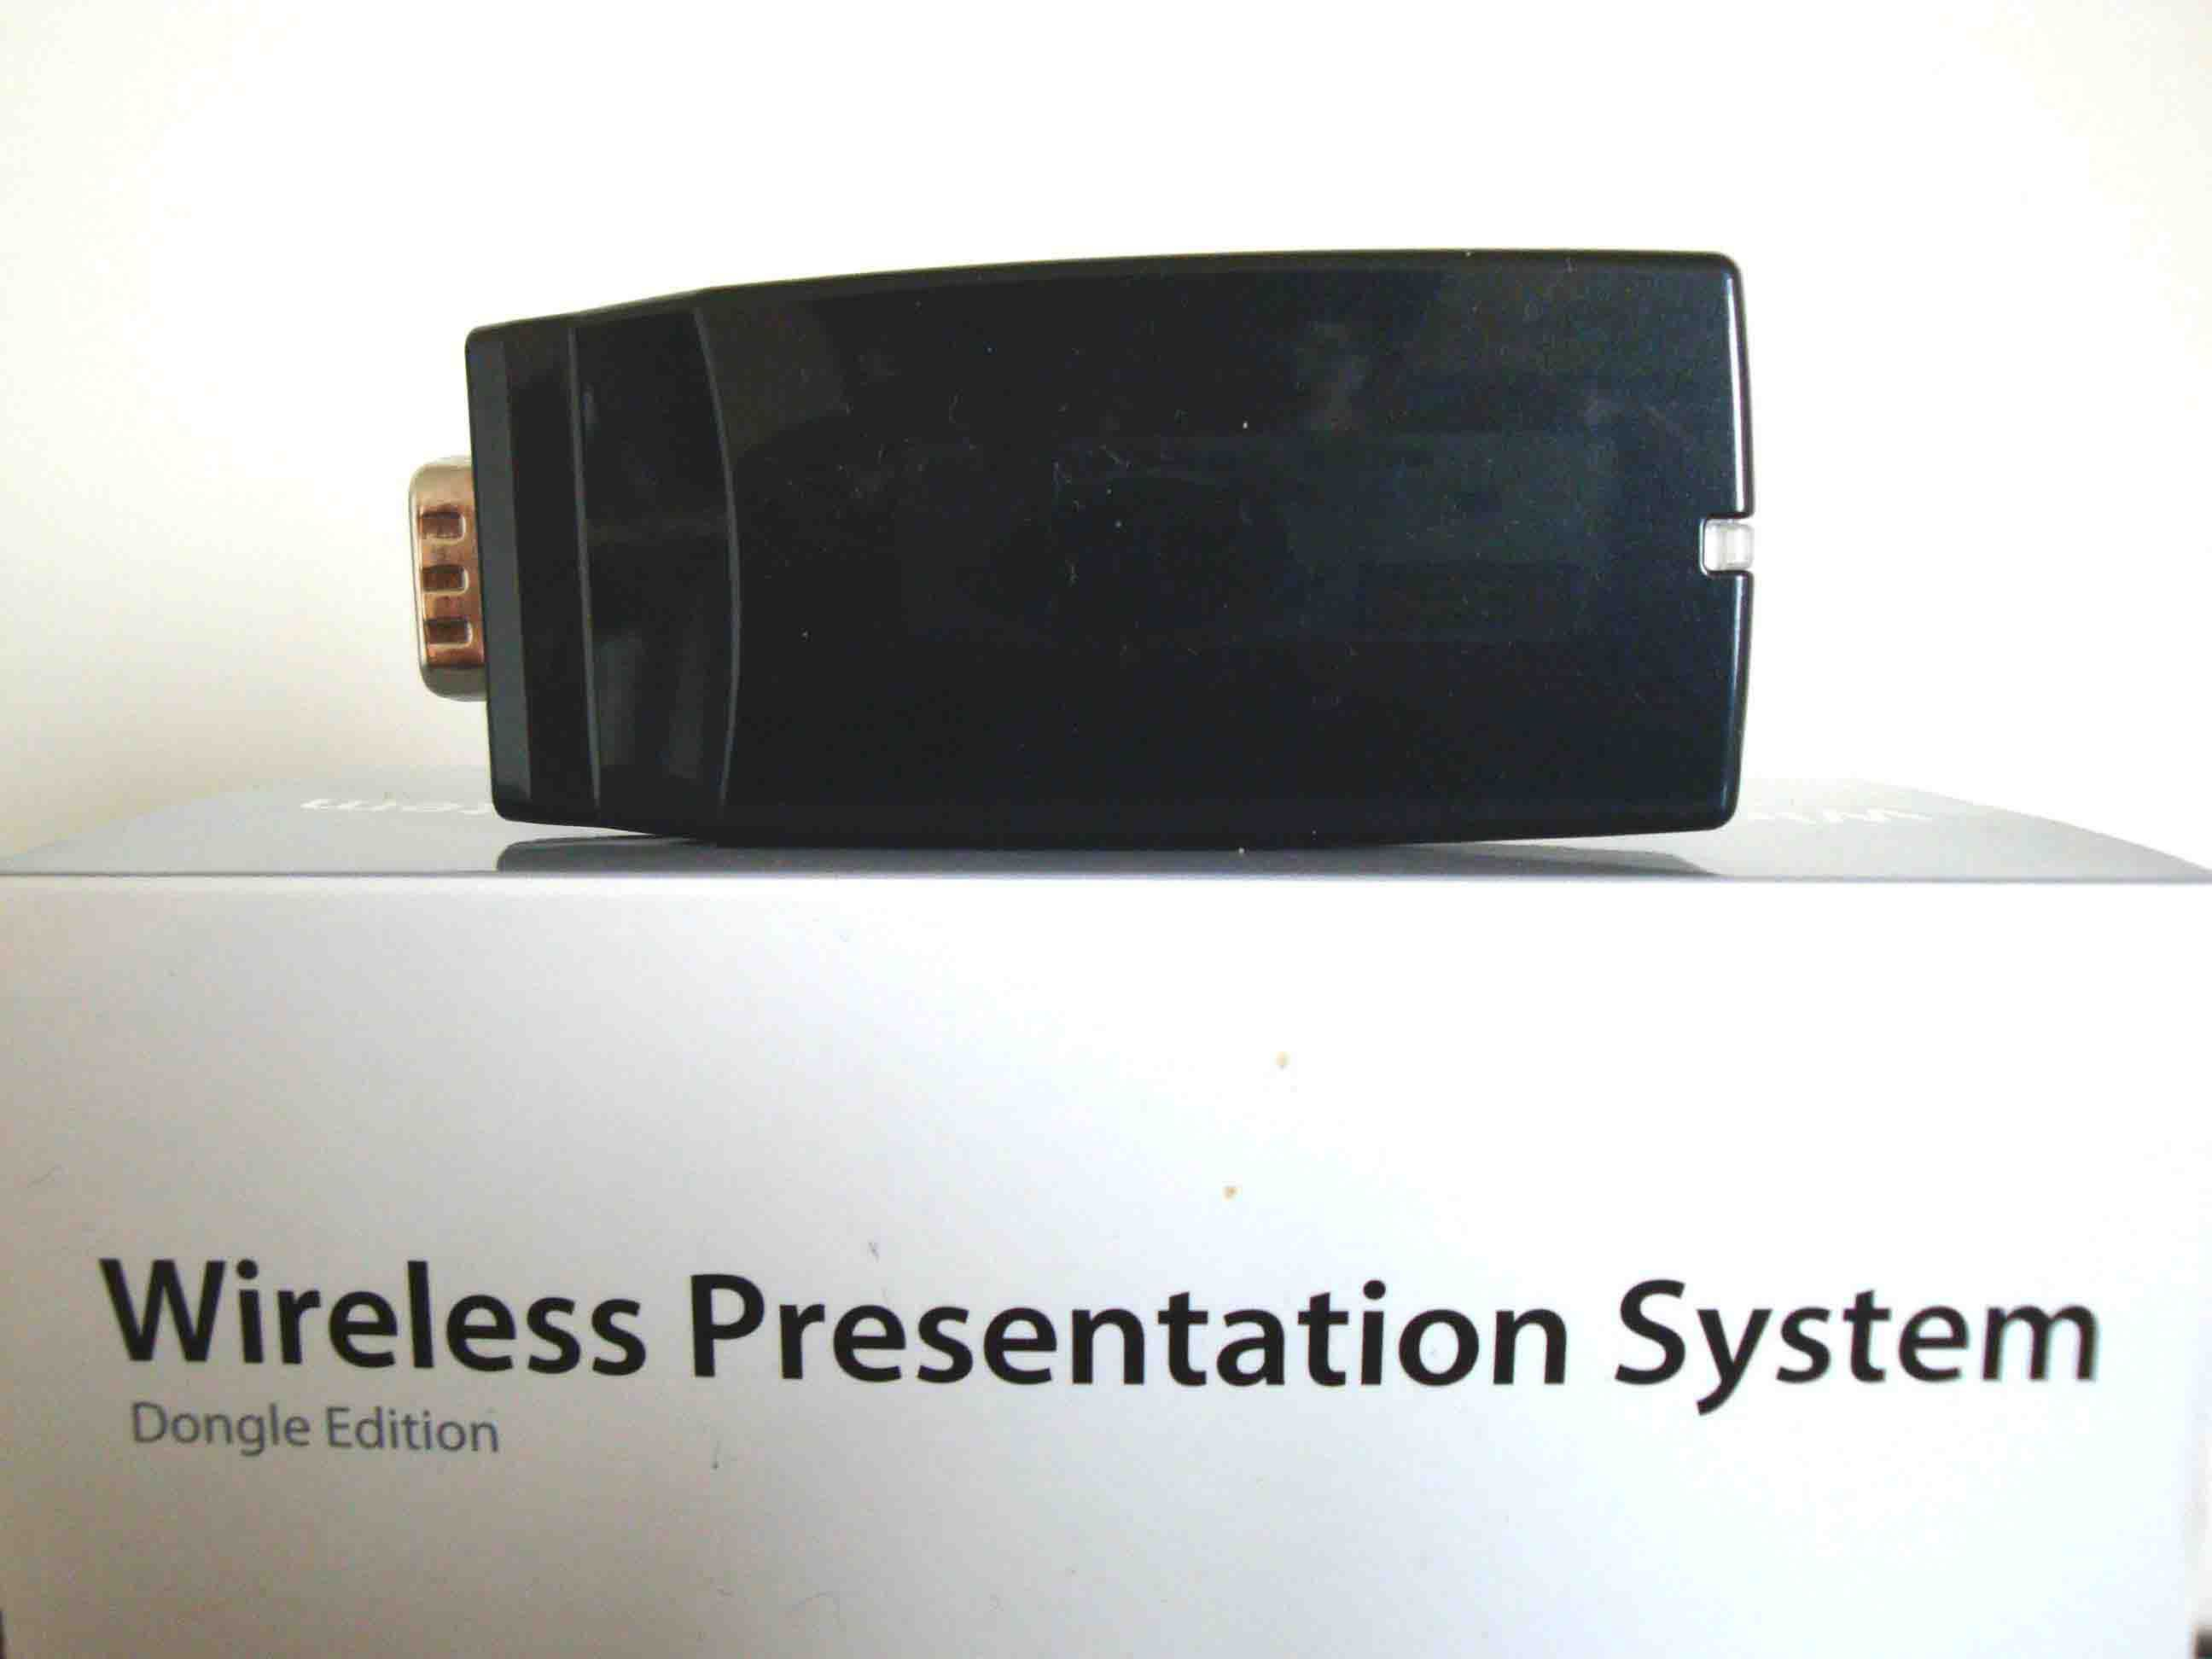 Wps Dongle Wireless Presentation Gateway Features